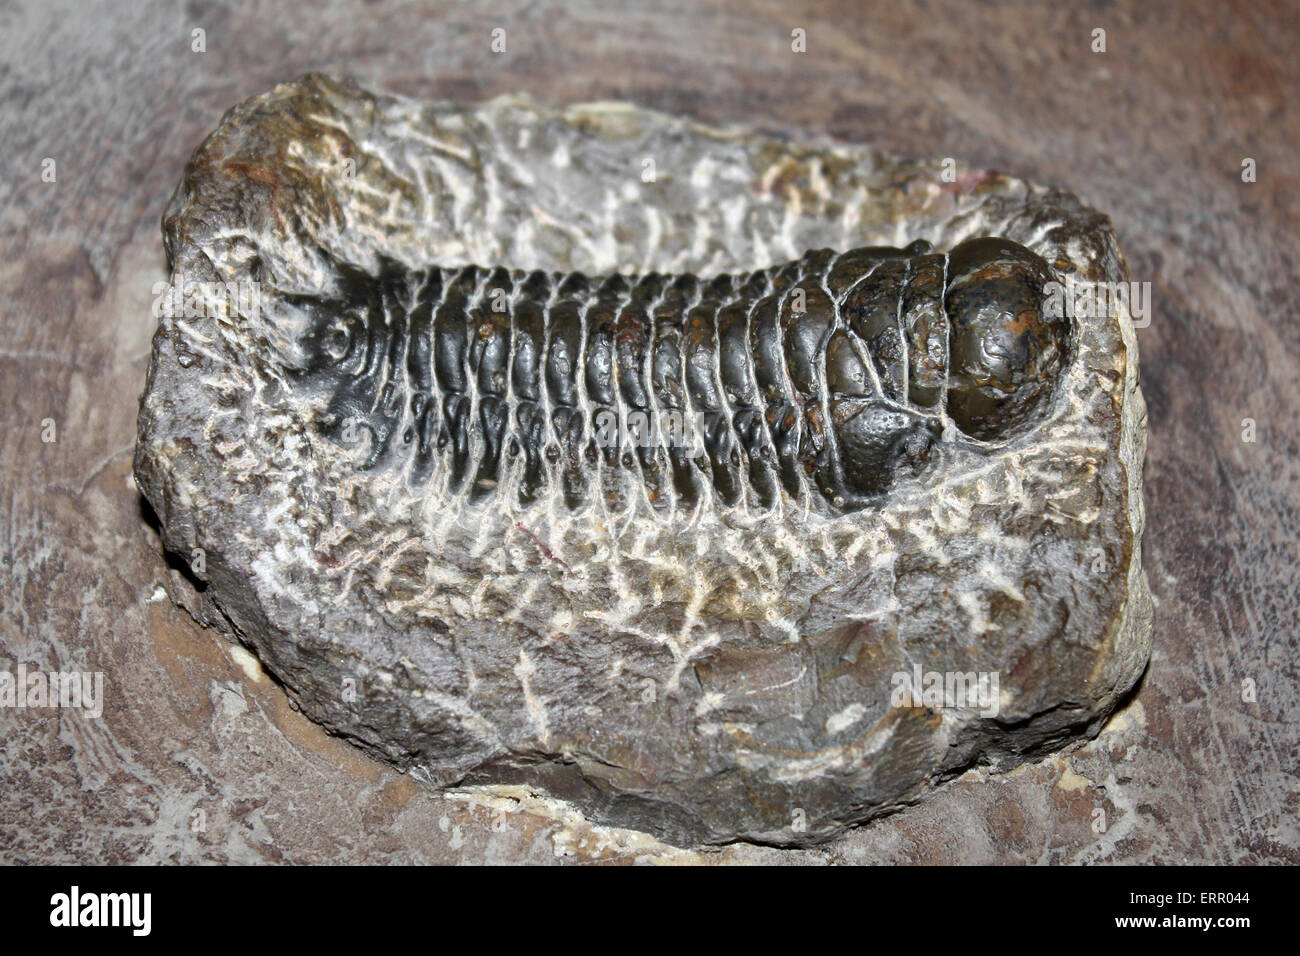 Trilobite Phacops sp. from the Atlas Mountains, Morocco - Stock Image